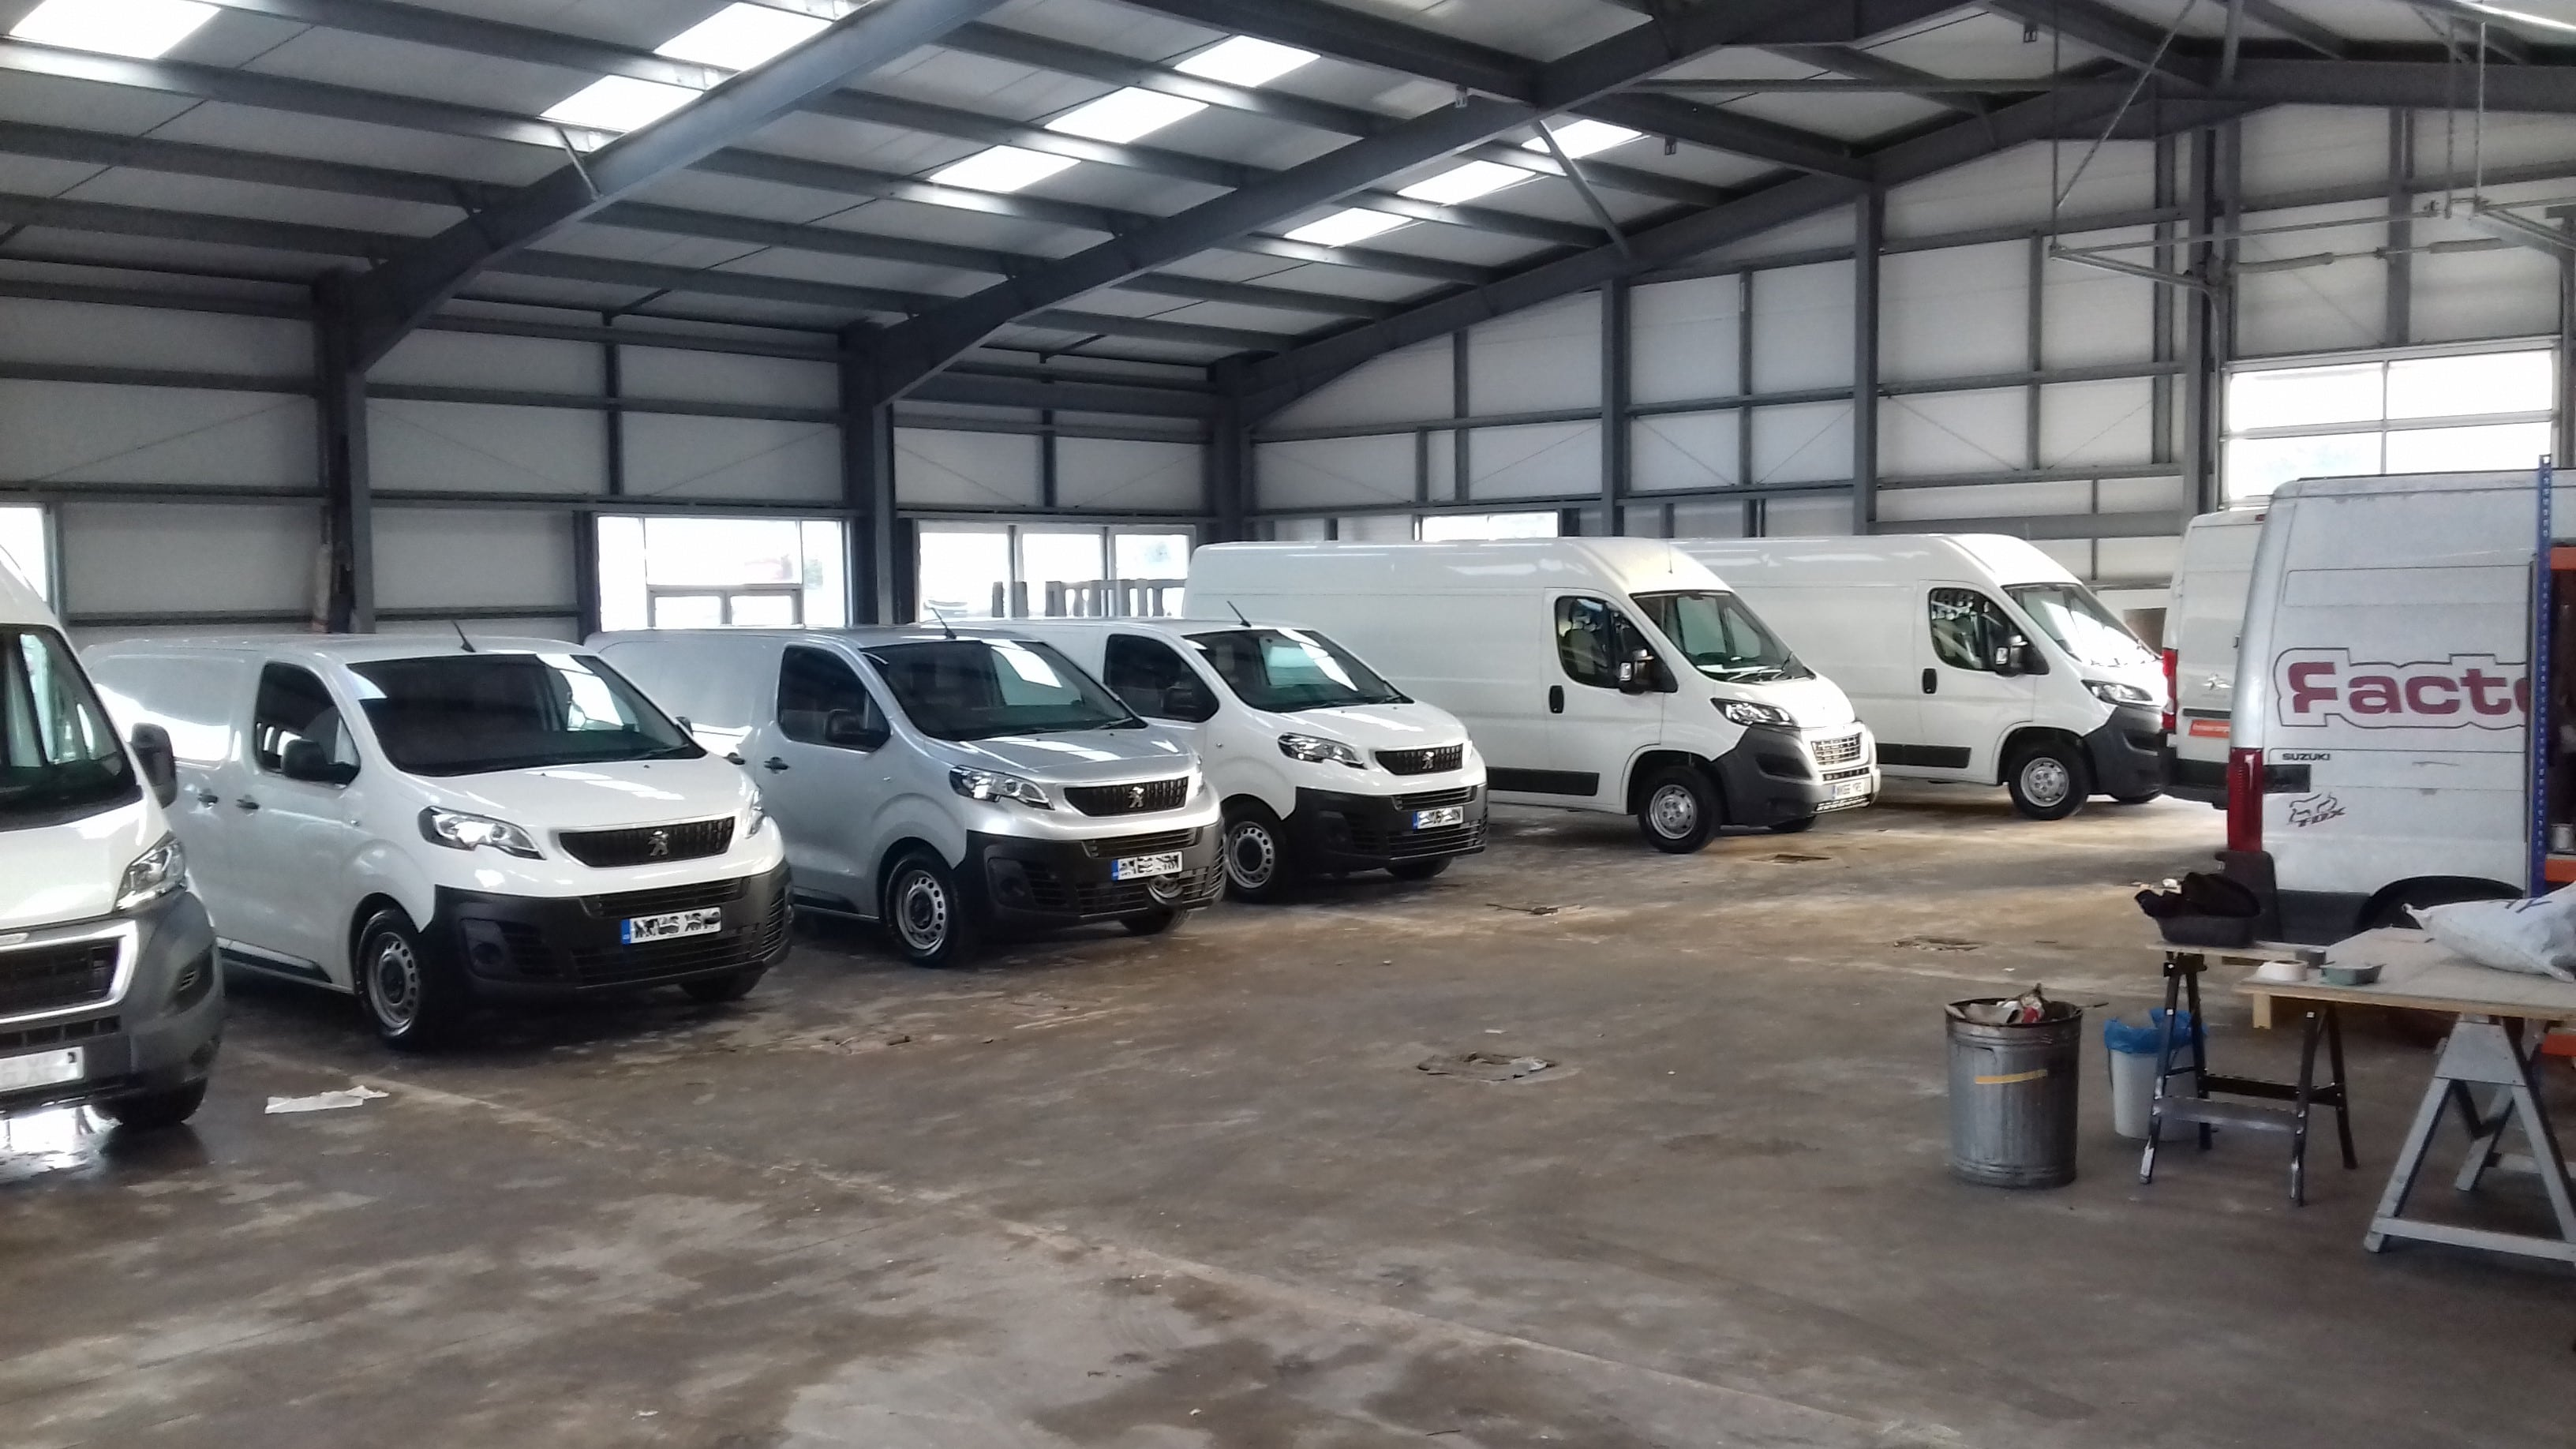 Van Conversion Workshop Today In Cornwall 20161207 144705 144652 144431